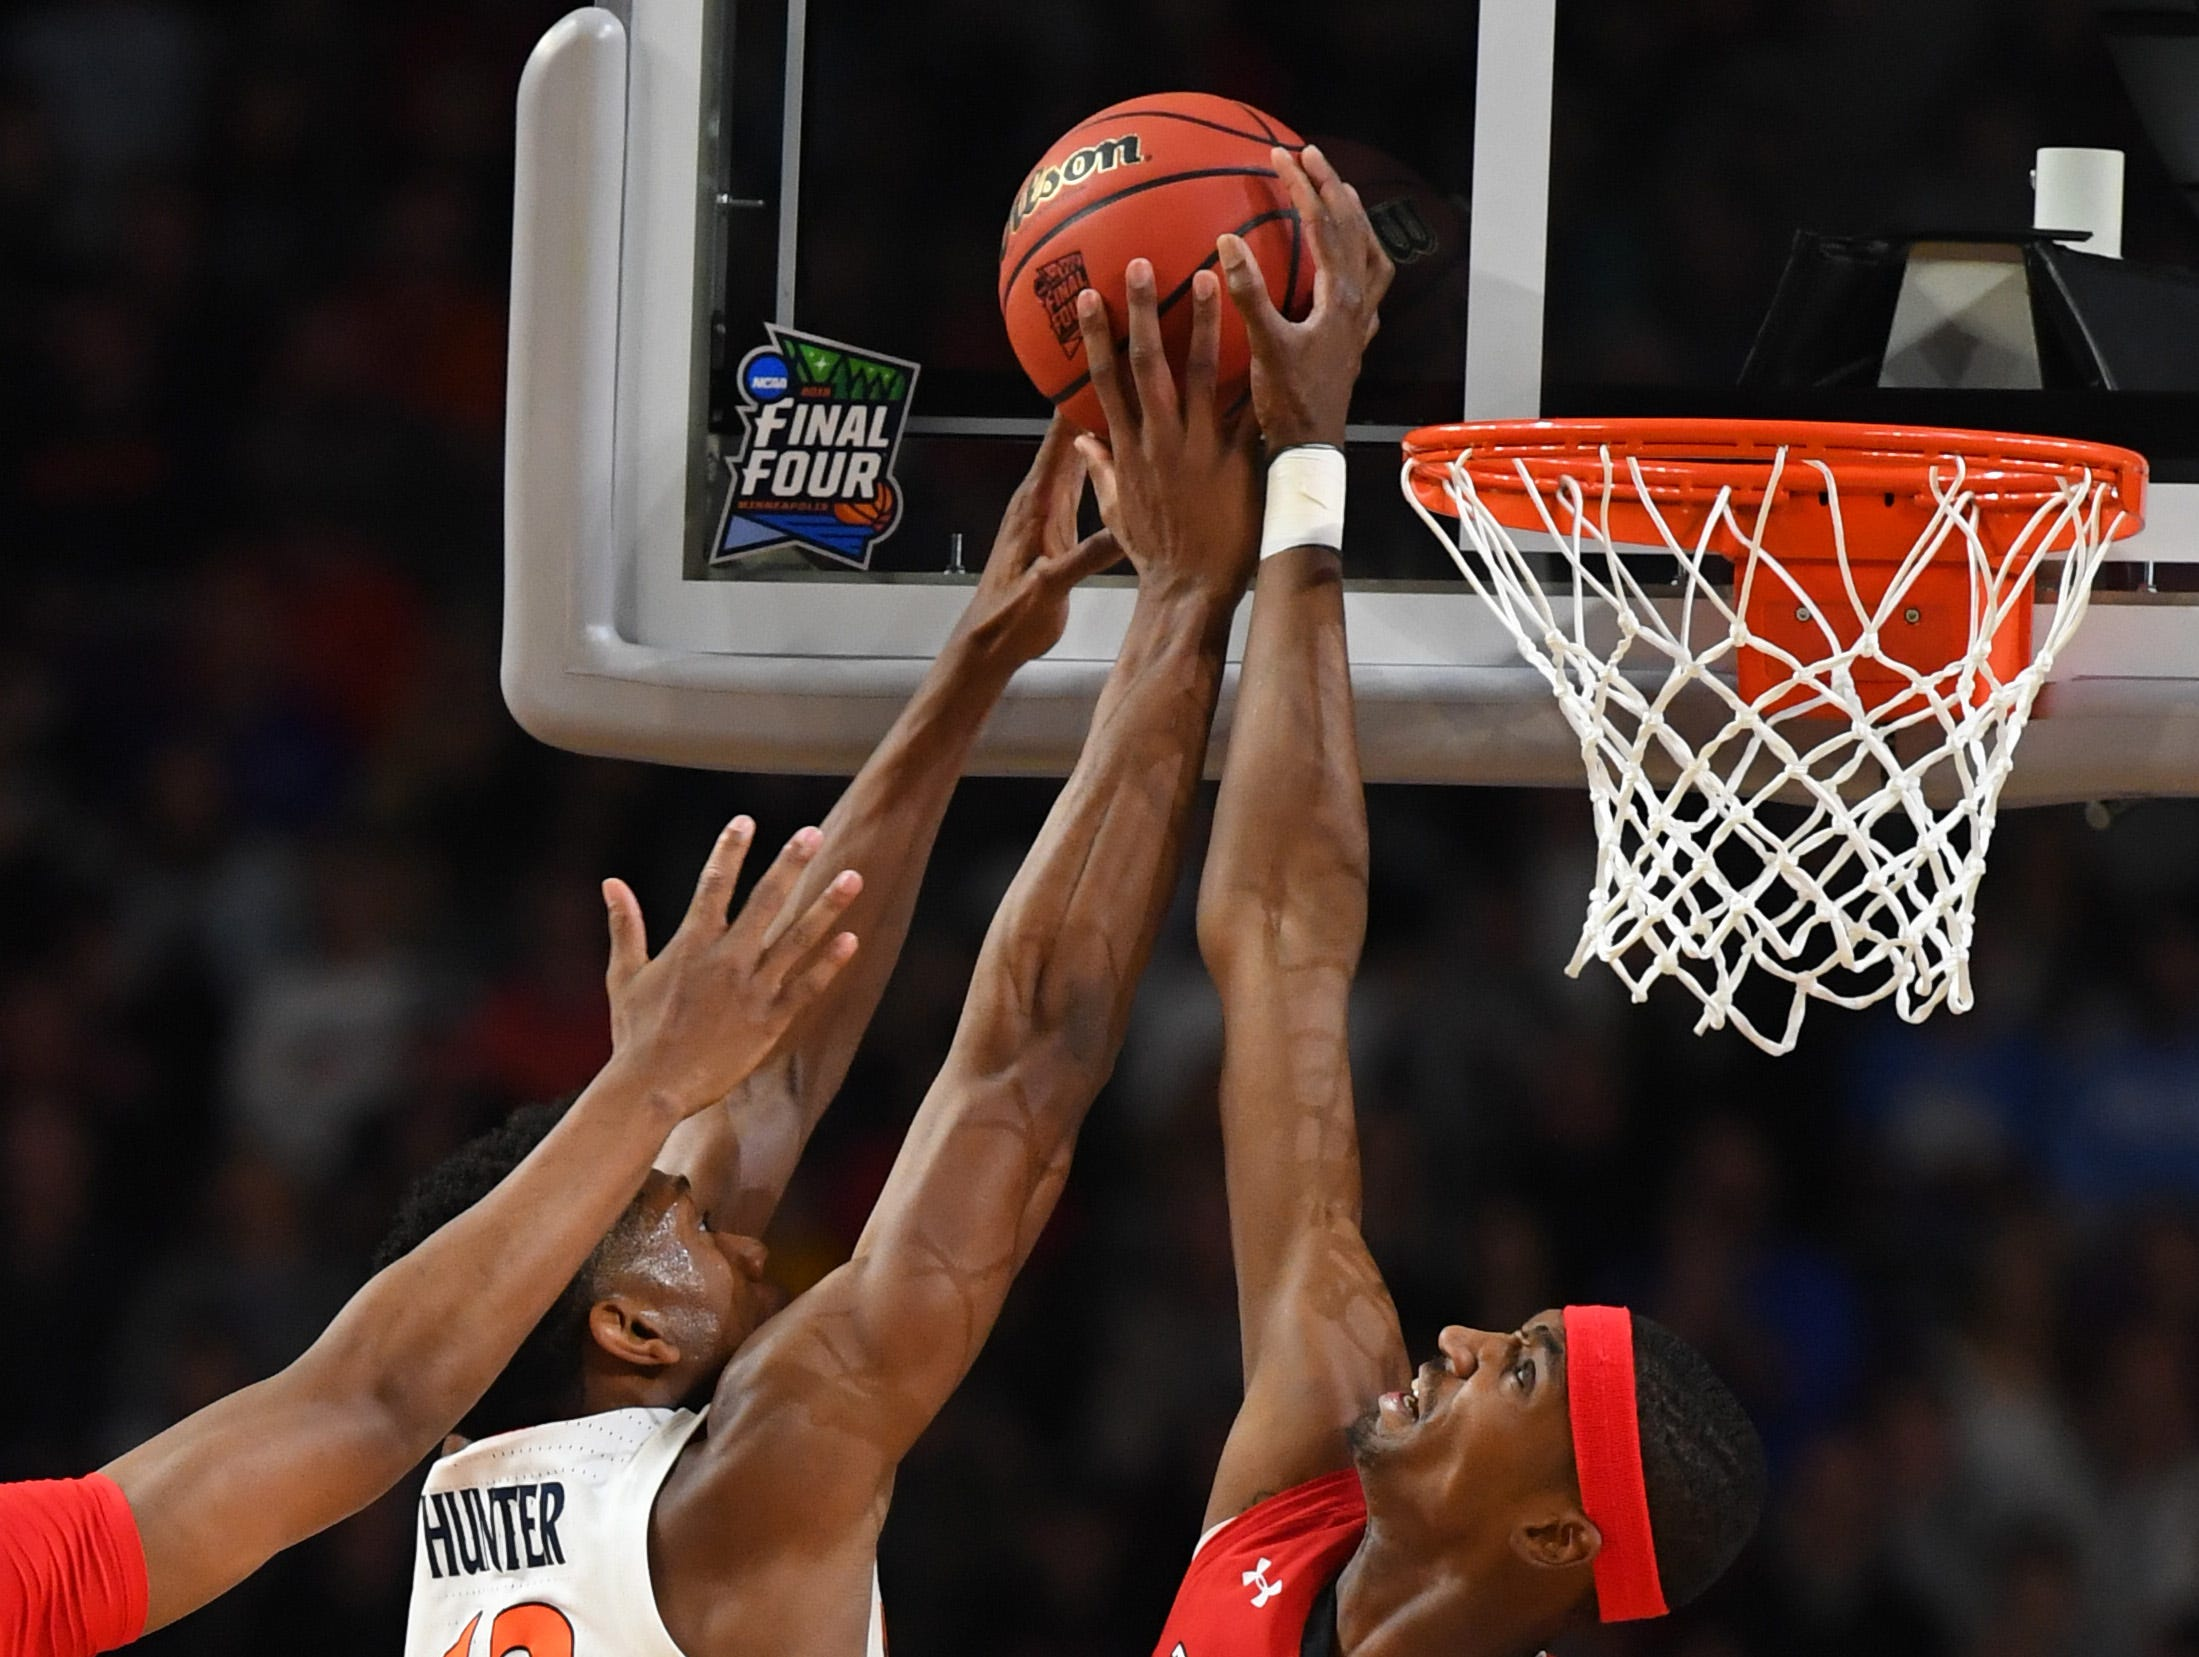 Apr 8, 2019; Minneapolis, MN, USA; Texas Tech Red Raiders forward Tariq Owens (11) blocks the shot of Virginia Cavaliers guard De'Andre Hunter (12) in the championship game of the 2019 men's Final Four at US Bank Stadium. Mandatory Credit: Robert Deutsch-USA TODAY Sports